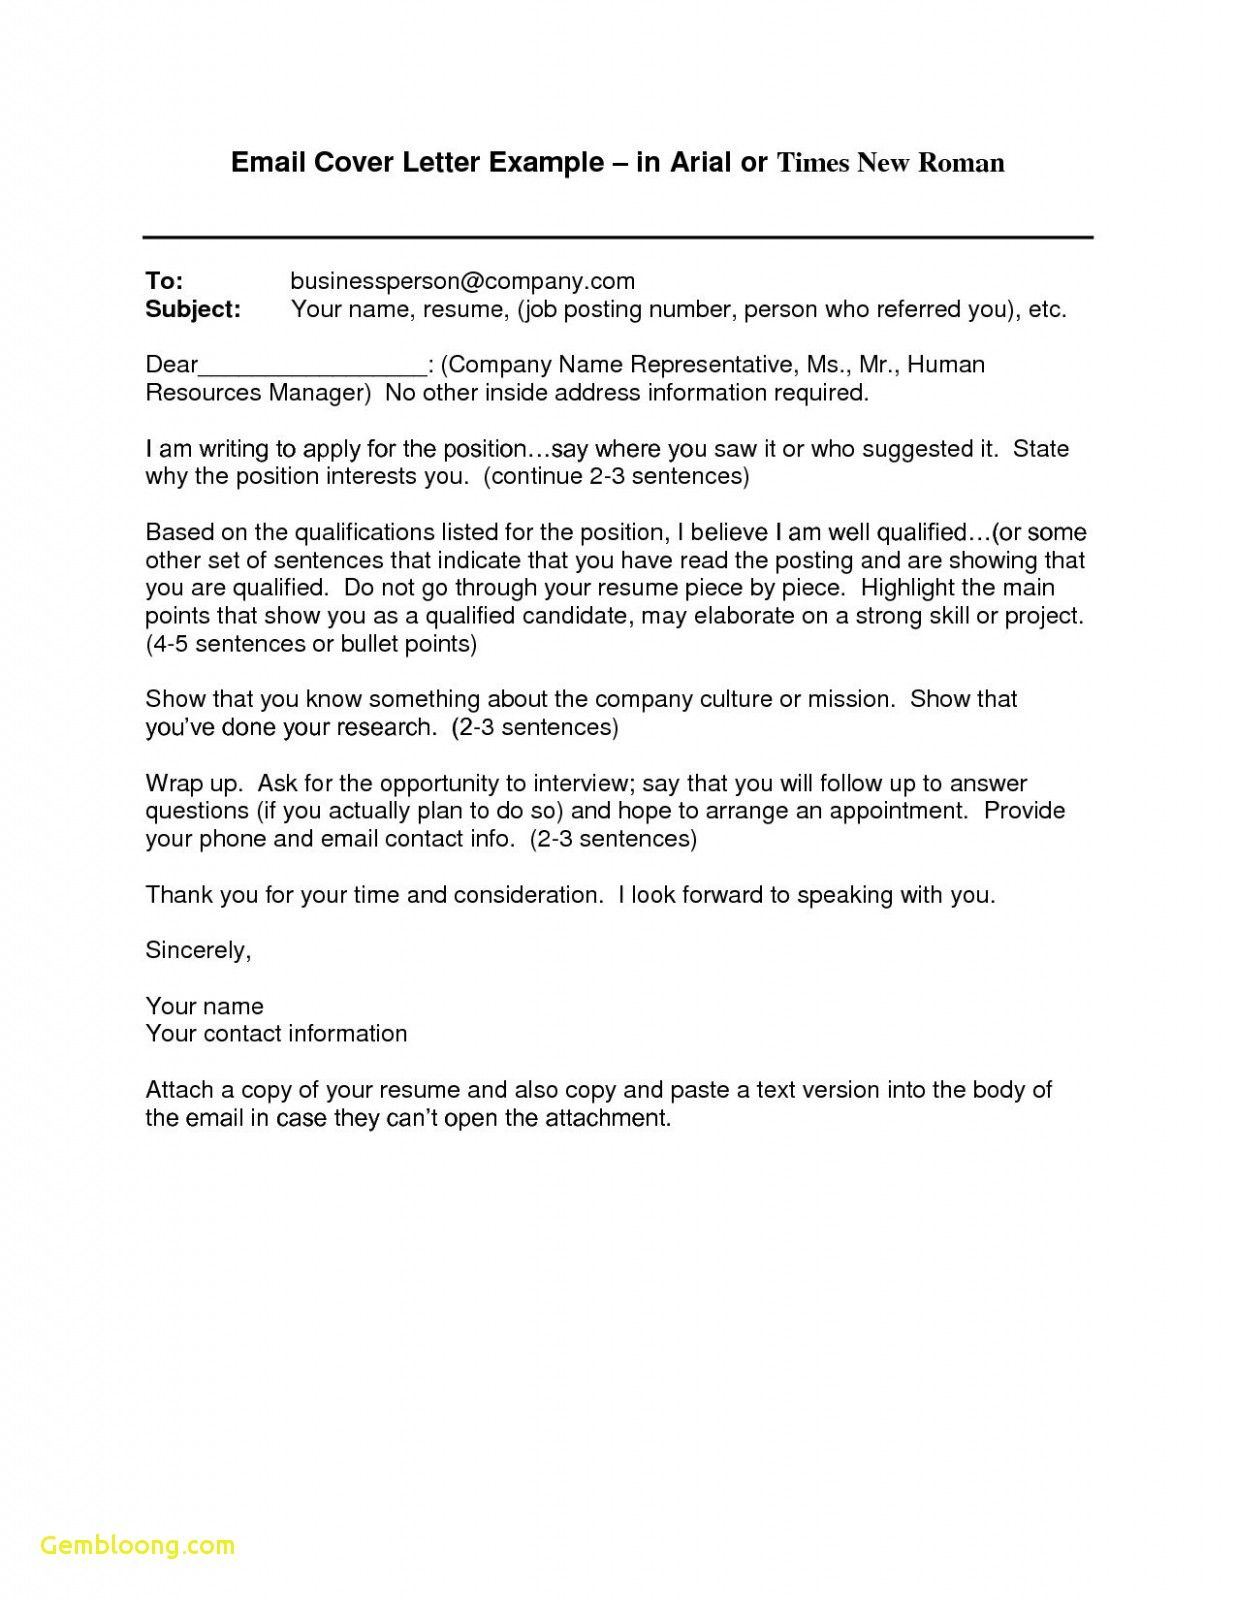 27+ Email Cover Letter Format | Resume Cover Letter Example ...